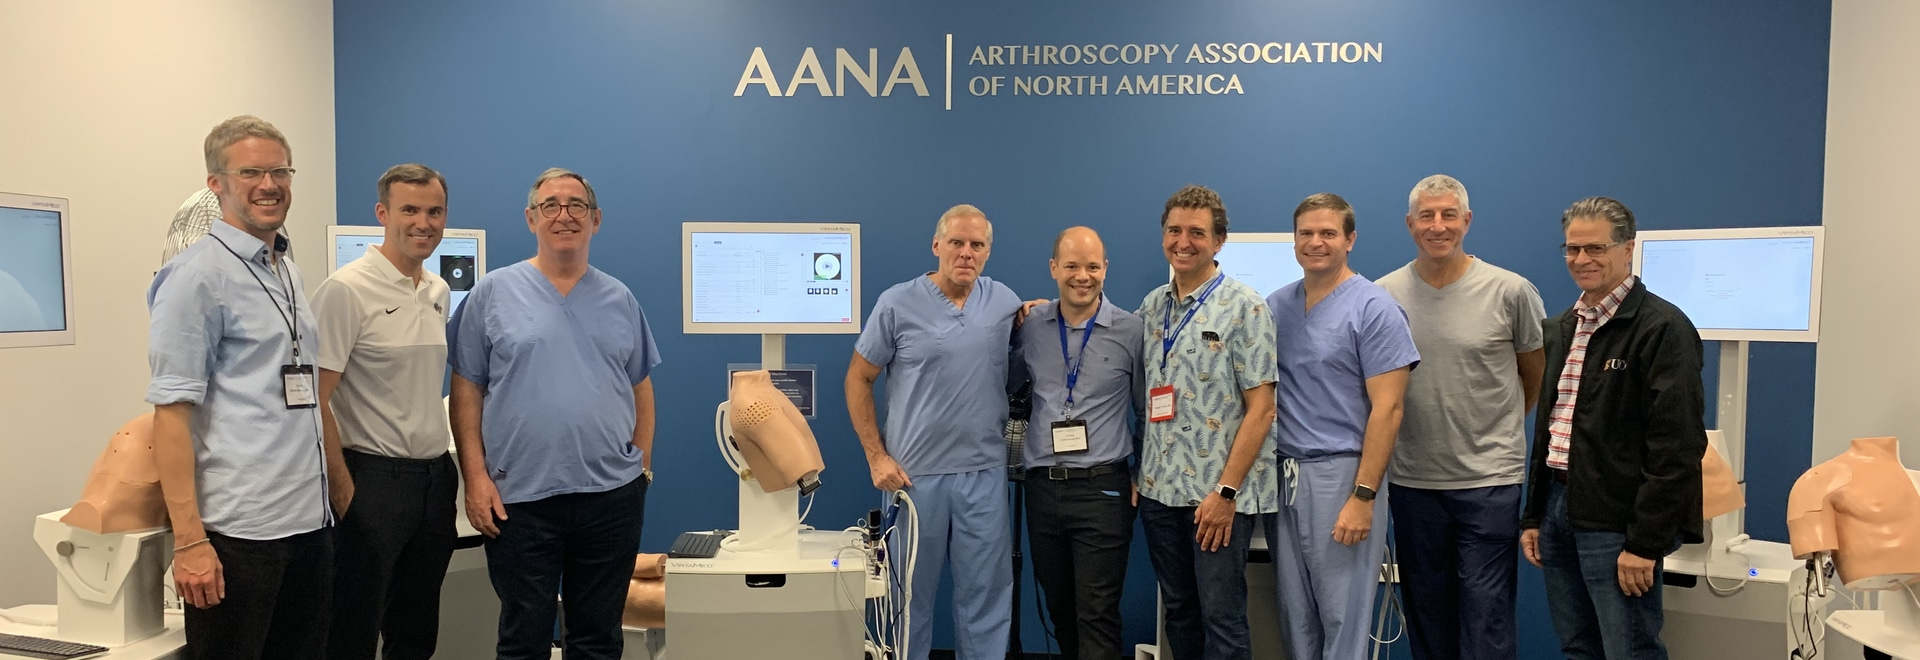 VirtaMed in the AANA Simulation Room at the OLC